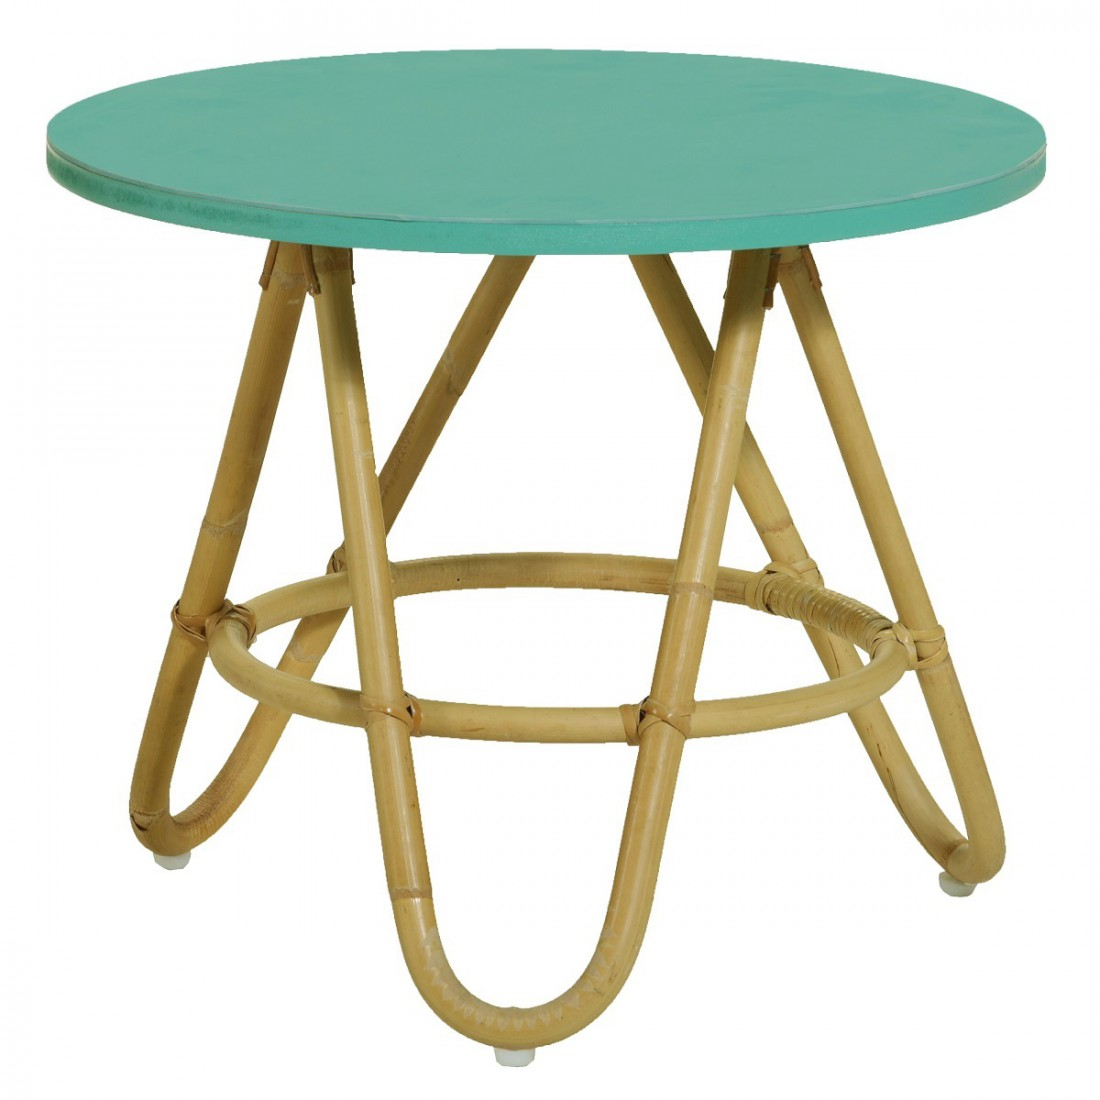 Table De Salon En Rotin Table Basse En Rotin Diabolo Plateau Aqua